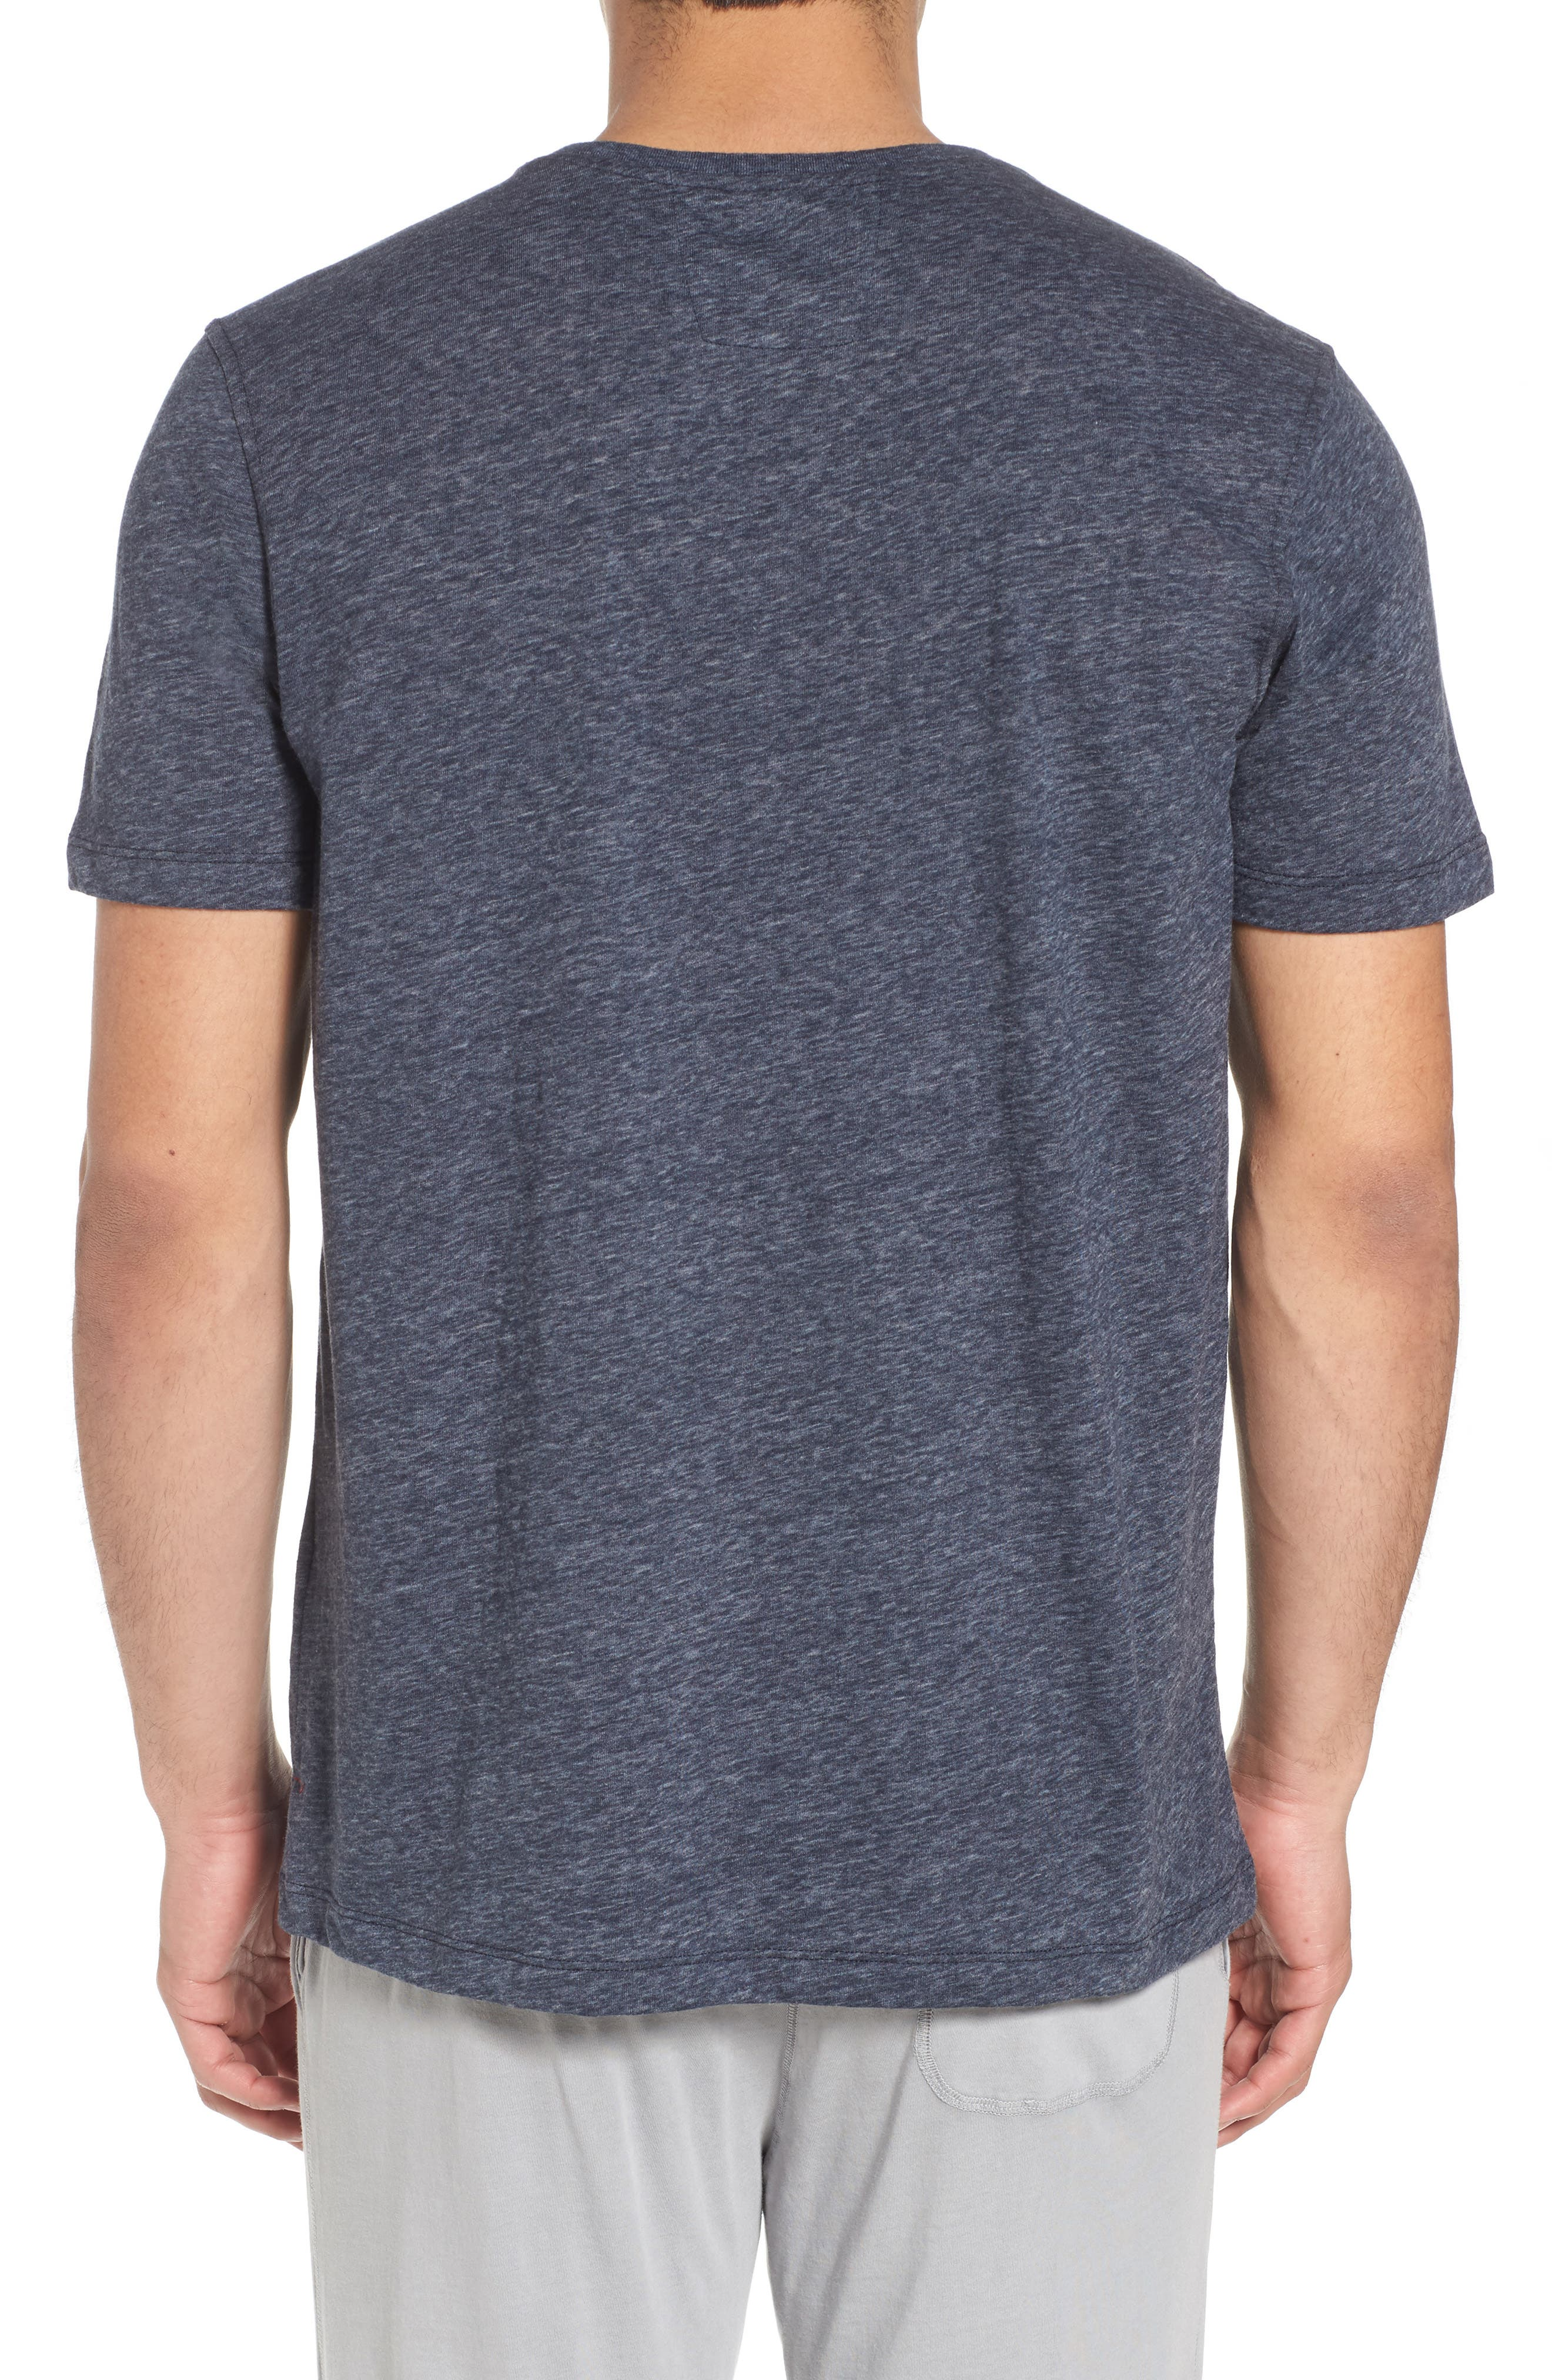 Recycled Cotton Blend T-Shirt,                             Alternate thumbnail 2, color,                             NAVY HEATHER